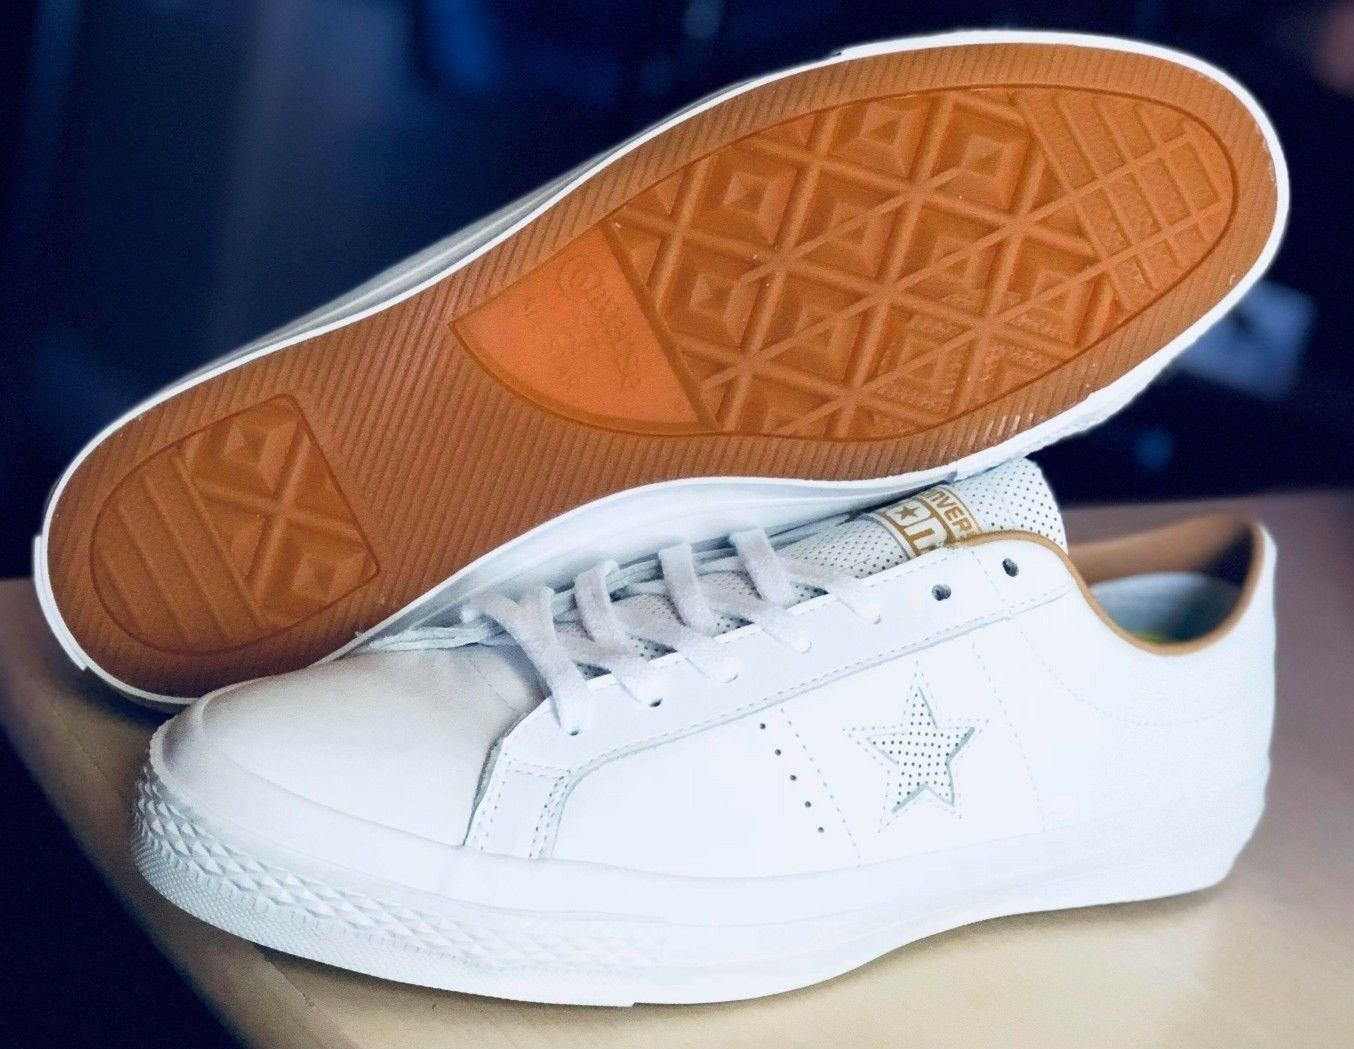 Converse One Star WHITE LEATHER Low Top Oxford SHOES SIZE MENS 9 153700C